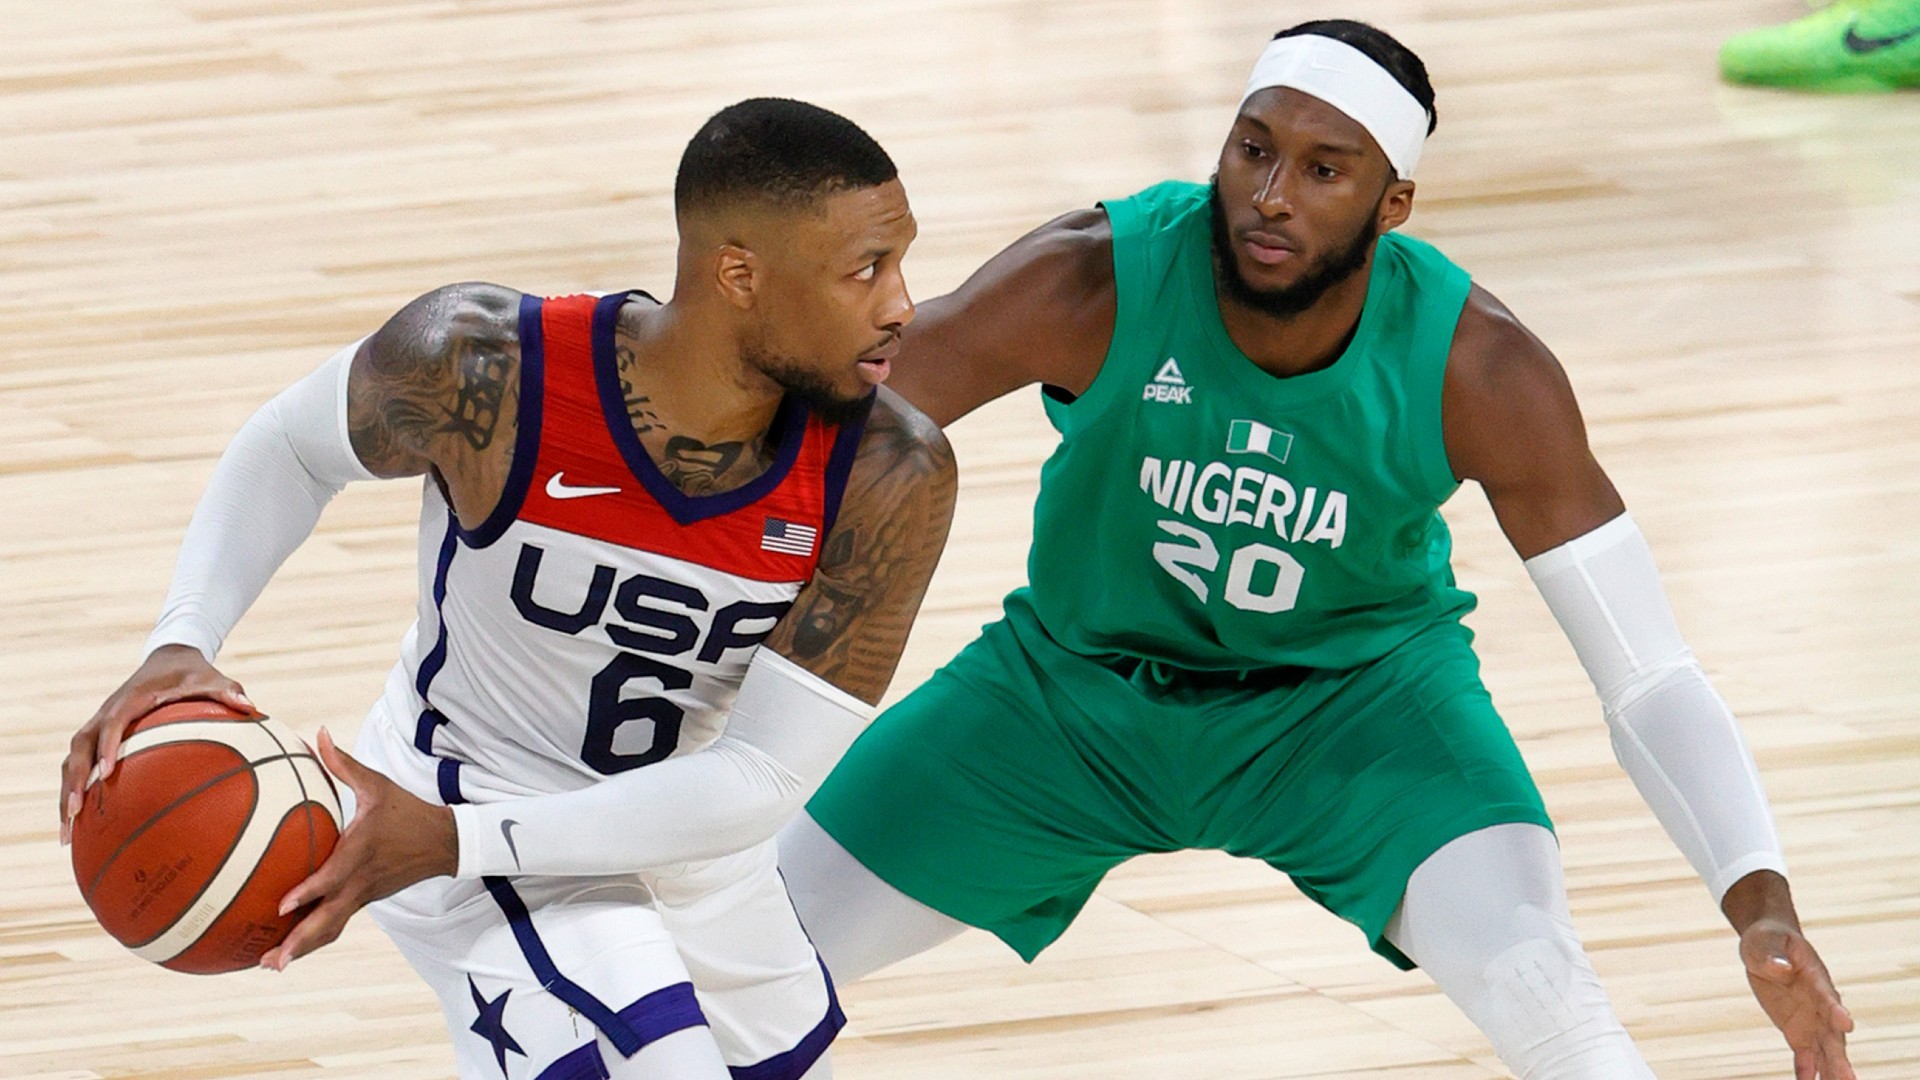 Olympic basketball draw, explained: how group play and qualification work for the 2021 tournaments